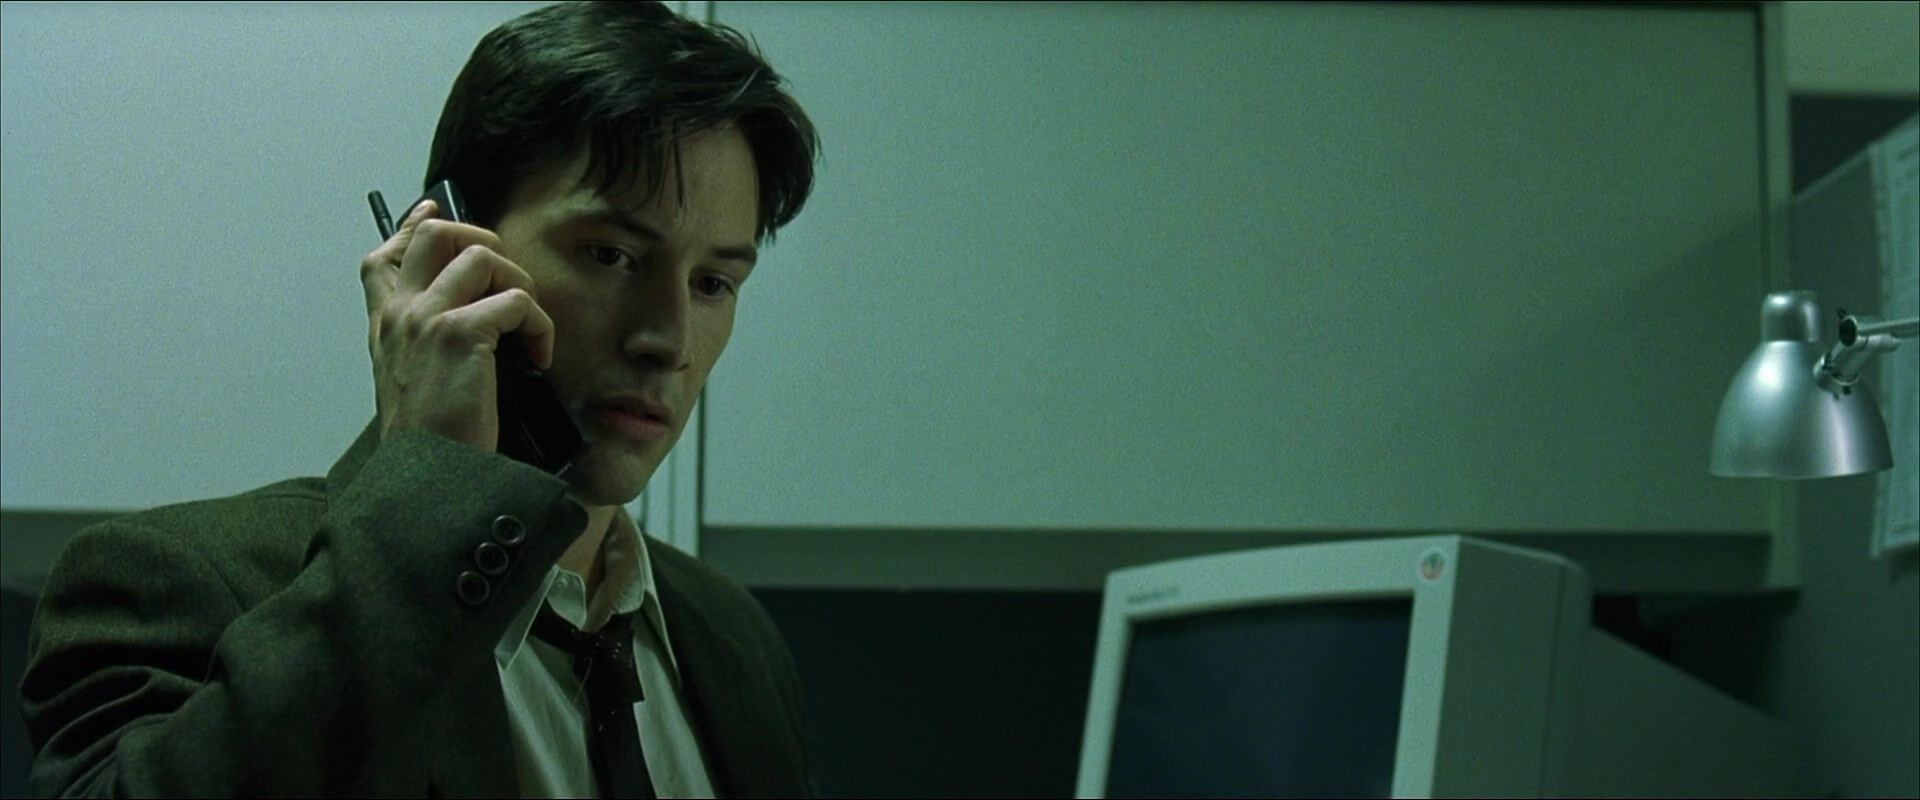 Keanu-Reeves-Neo-in-The-Matrix